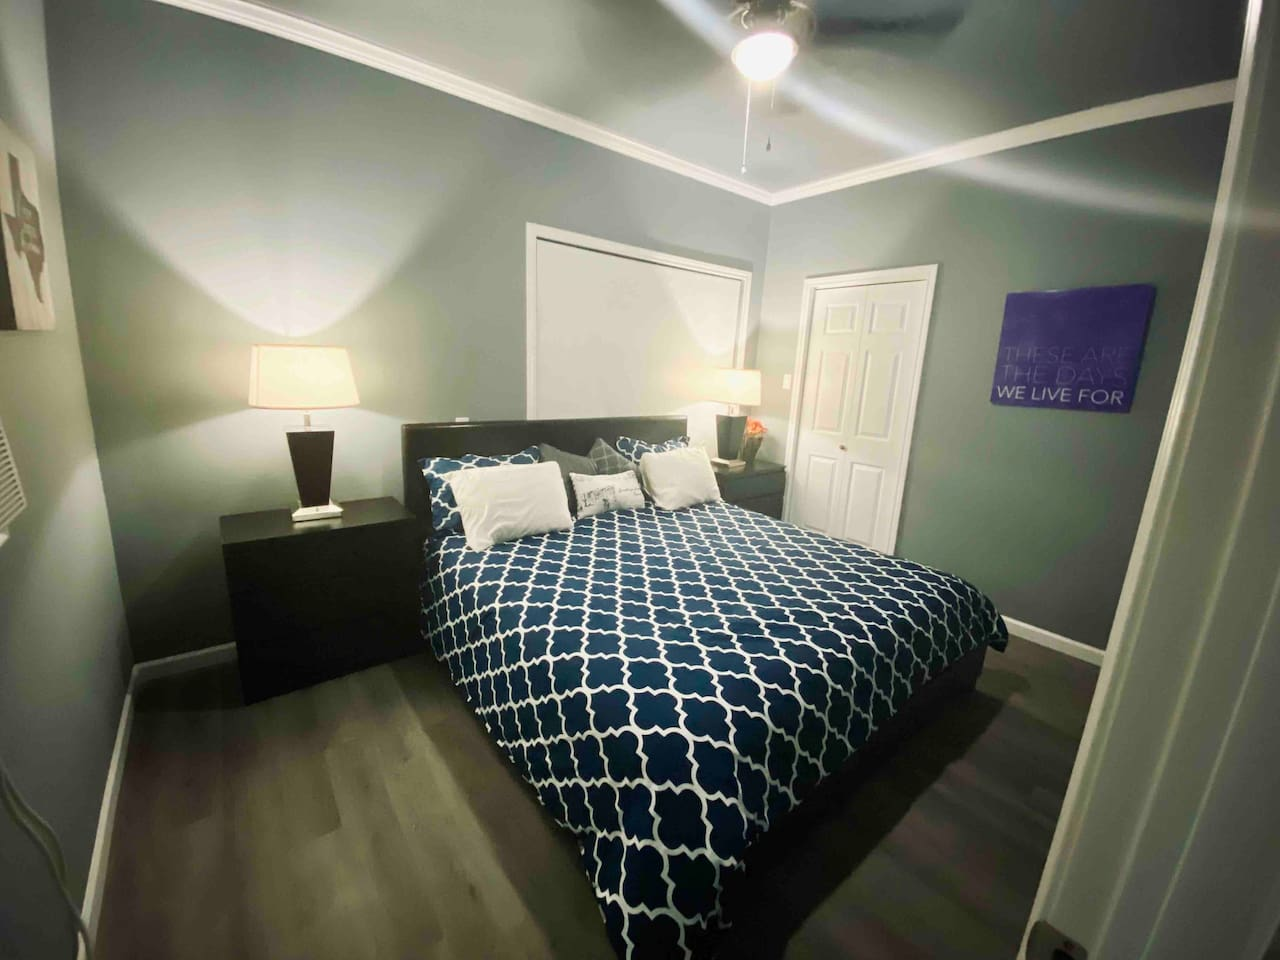 King size bed for plenty of room to stretch out. Blackout shade keeps the room dark for your best nights sleep!